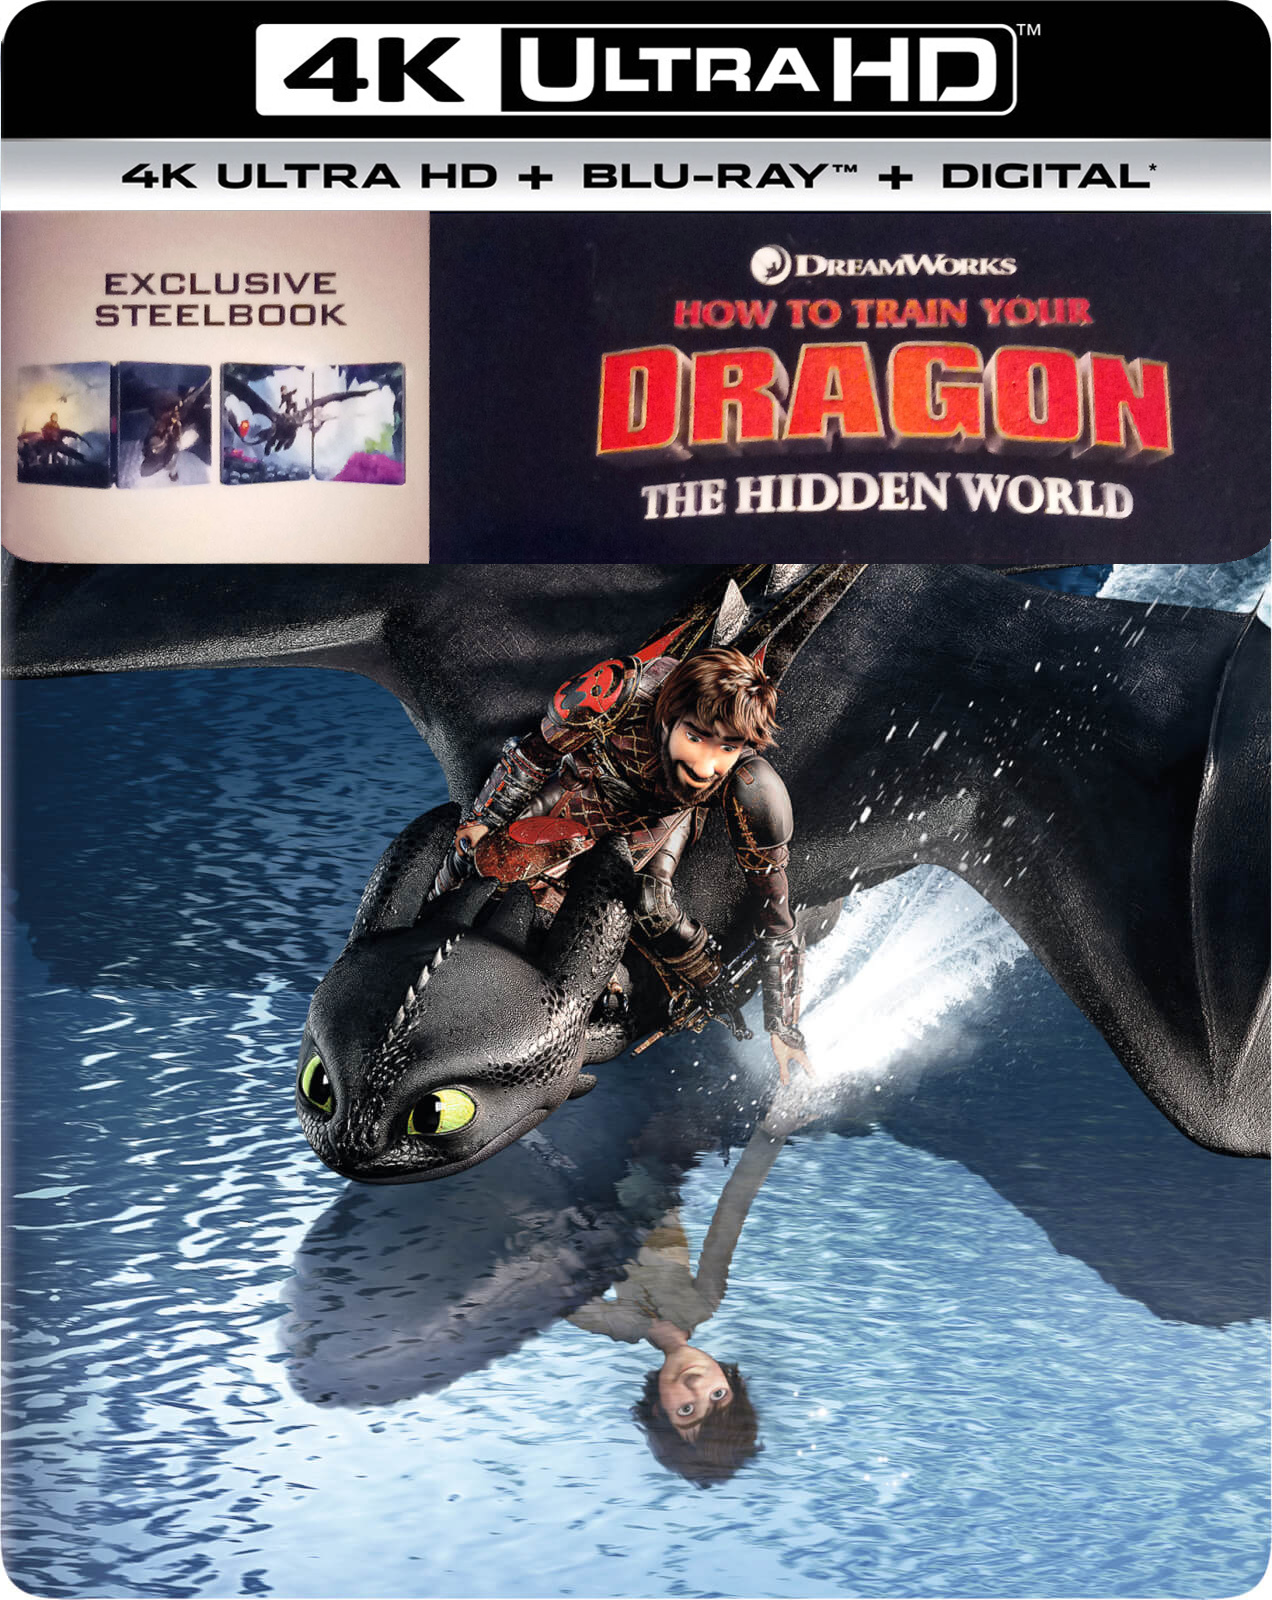 How to Train Your Dragon 3: The Hidden World (SteelBook)(4K Ultra HD Blu-ray)(Pre-order / May 21)